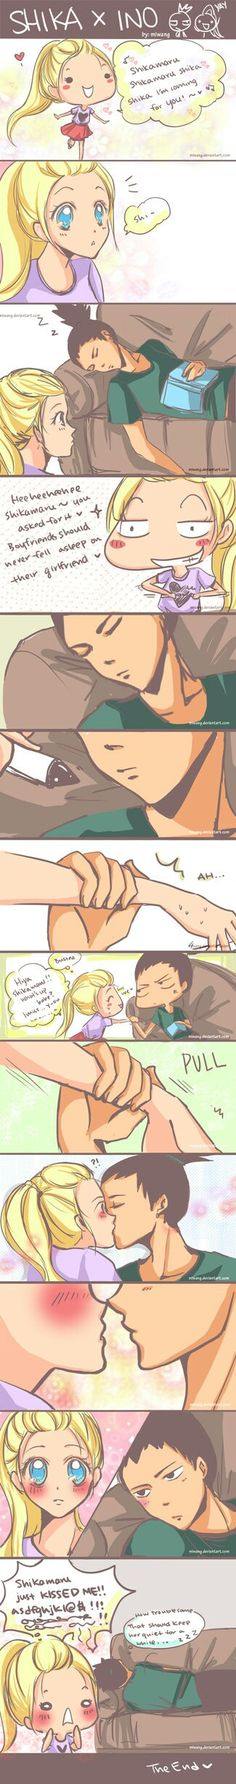 Shika x ino bahahaha - Not really a fan of this pairing but this was really cute. :)